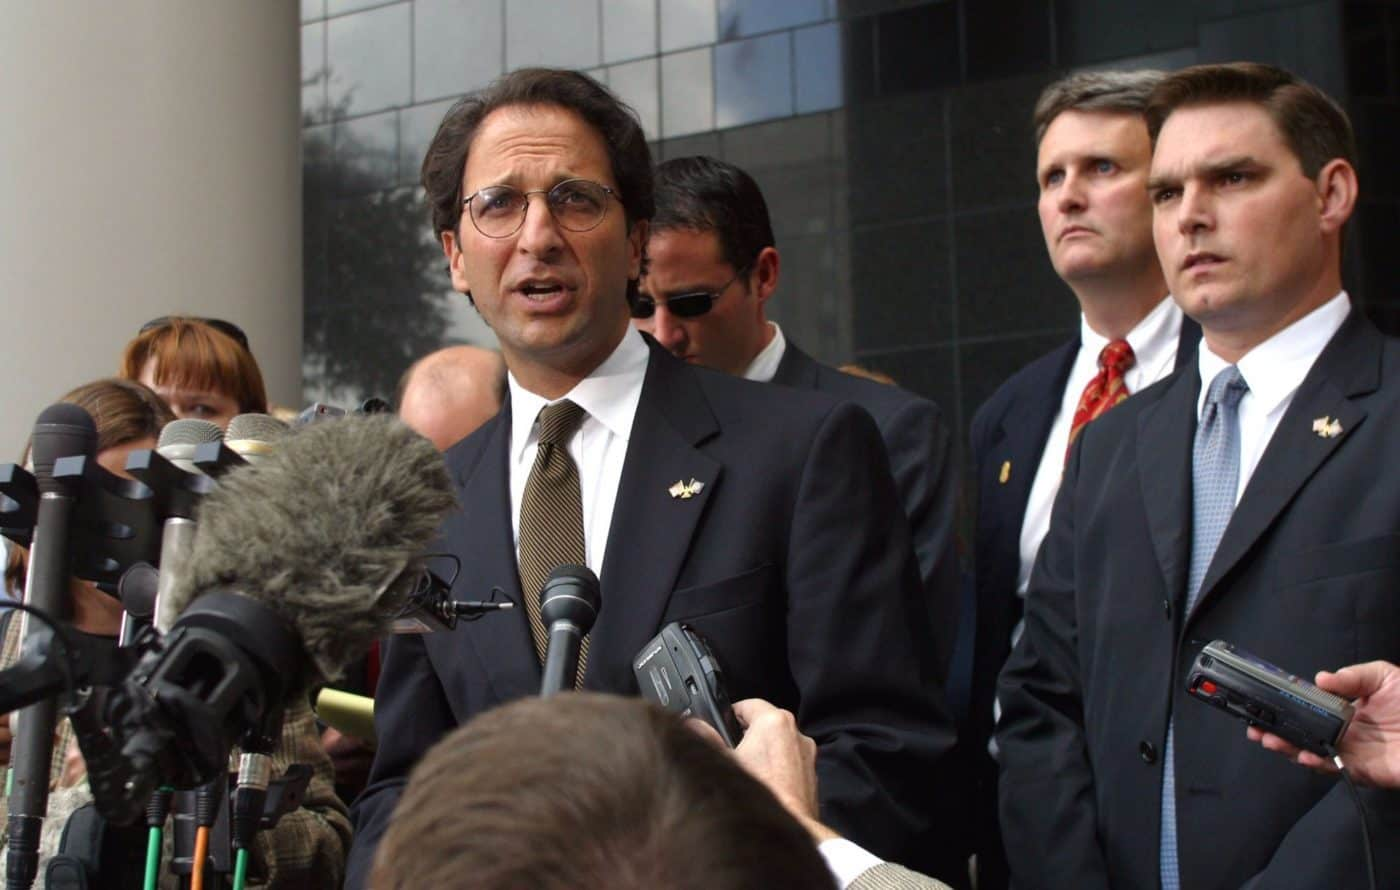 OPINION: It is a travesty of justice that Andrew Weissman never has been held accountable - Sara A. Carter